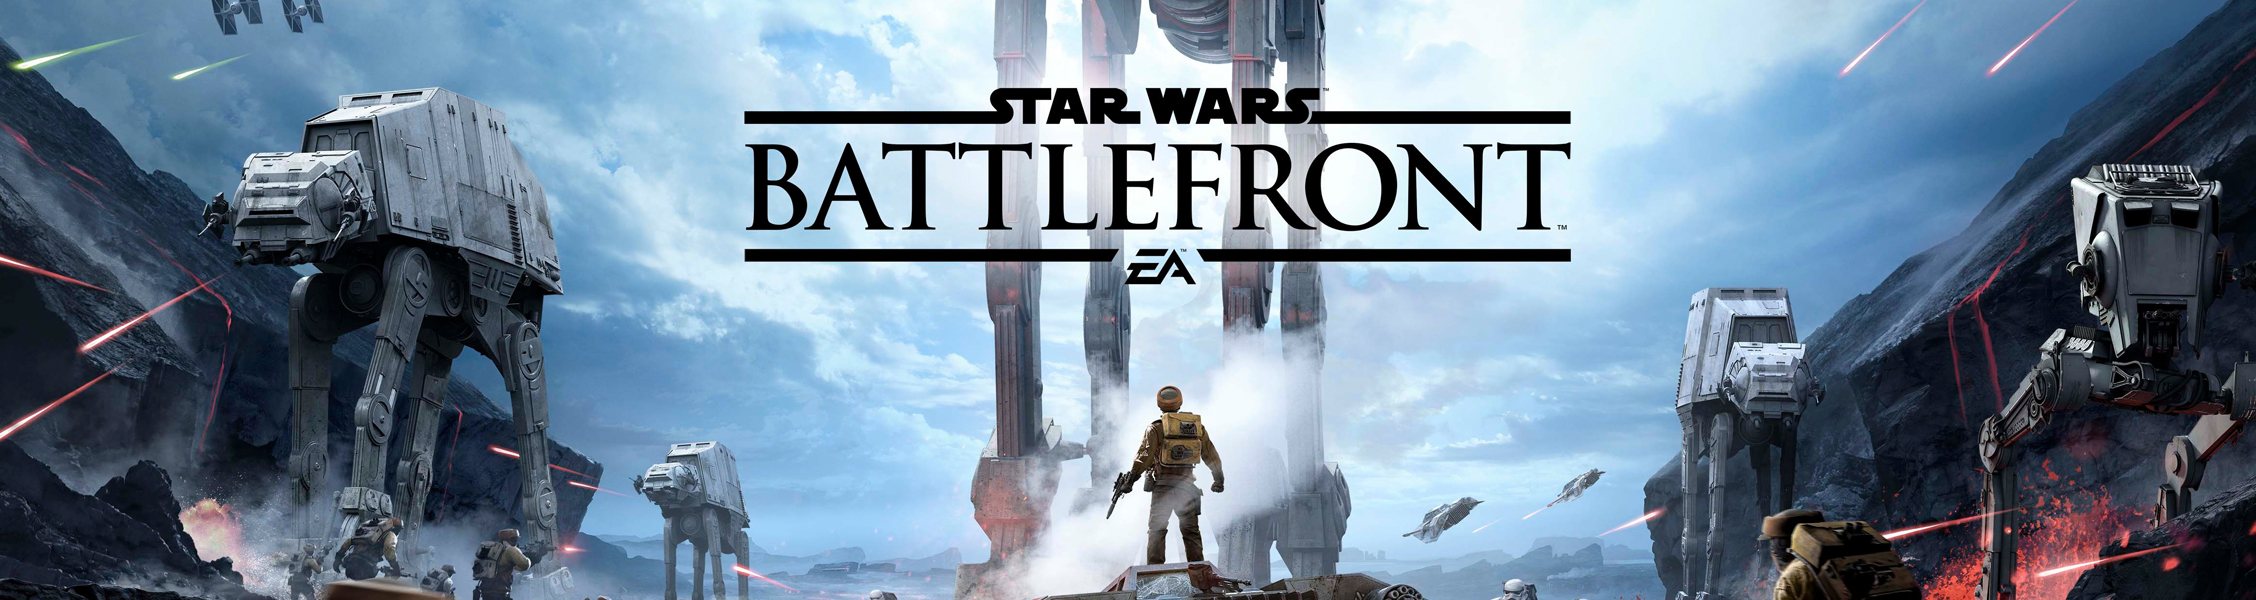 star-wars-battlefront-banner